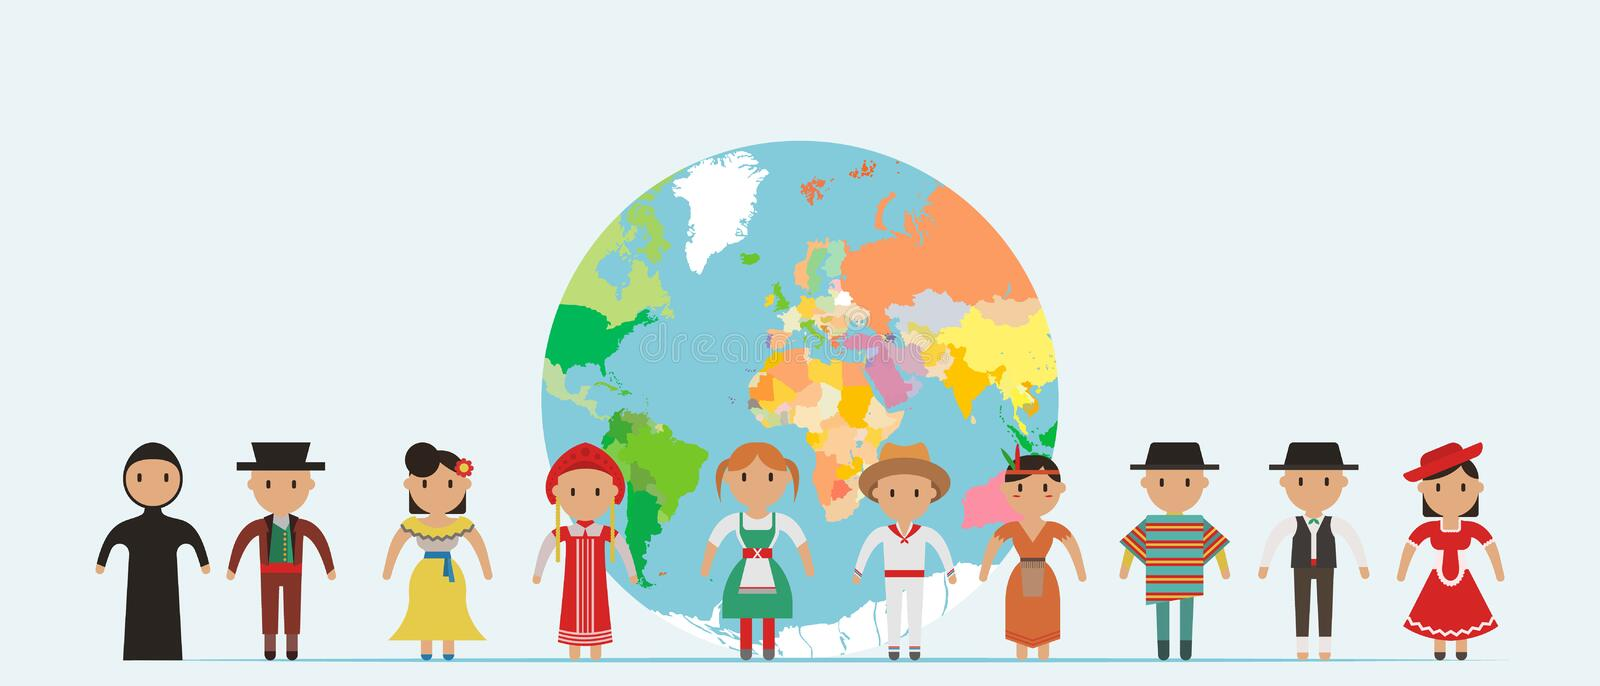 World kids. International friendship day! Vector illustration of diverse Children Holding Hands around the planet. On white background vector illustration